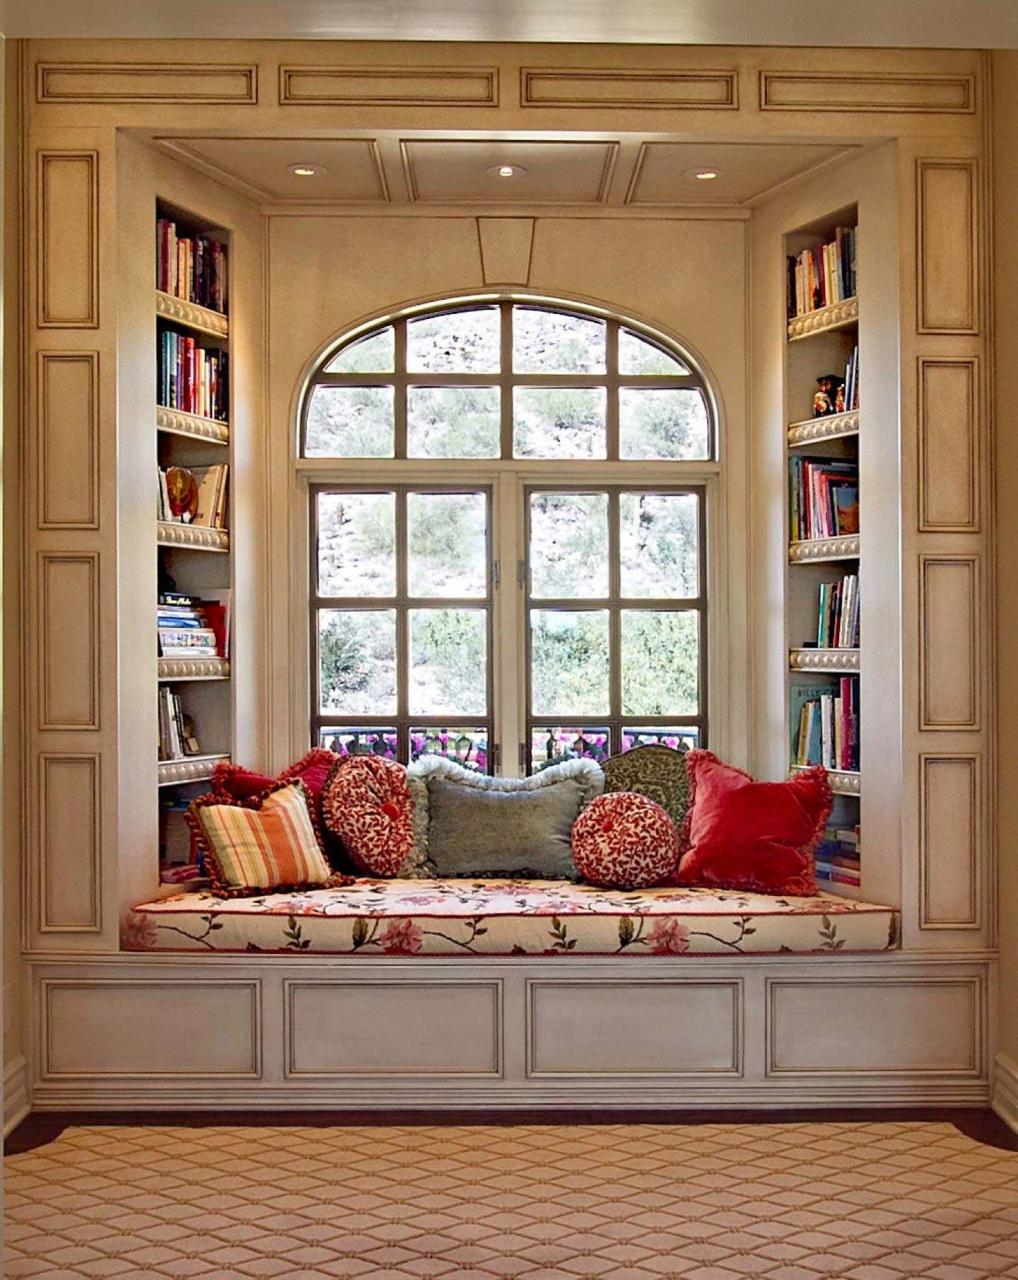 When Designing A Home Library It S Important To Take Into Account Including Place Where You Can Lounge Around And Read In Peace